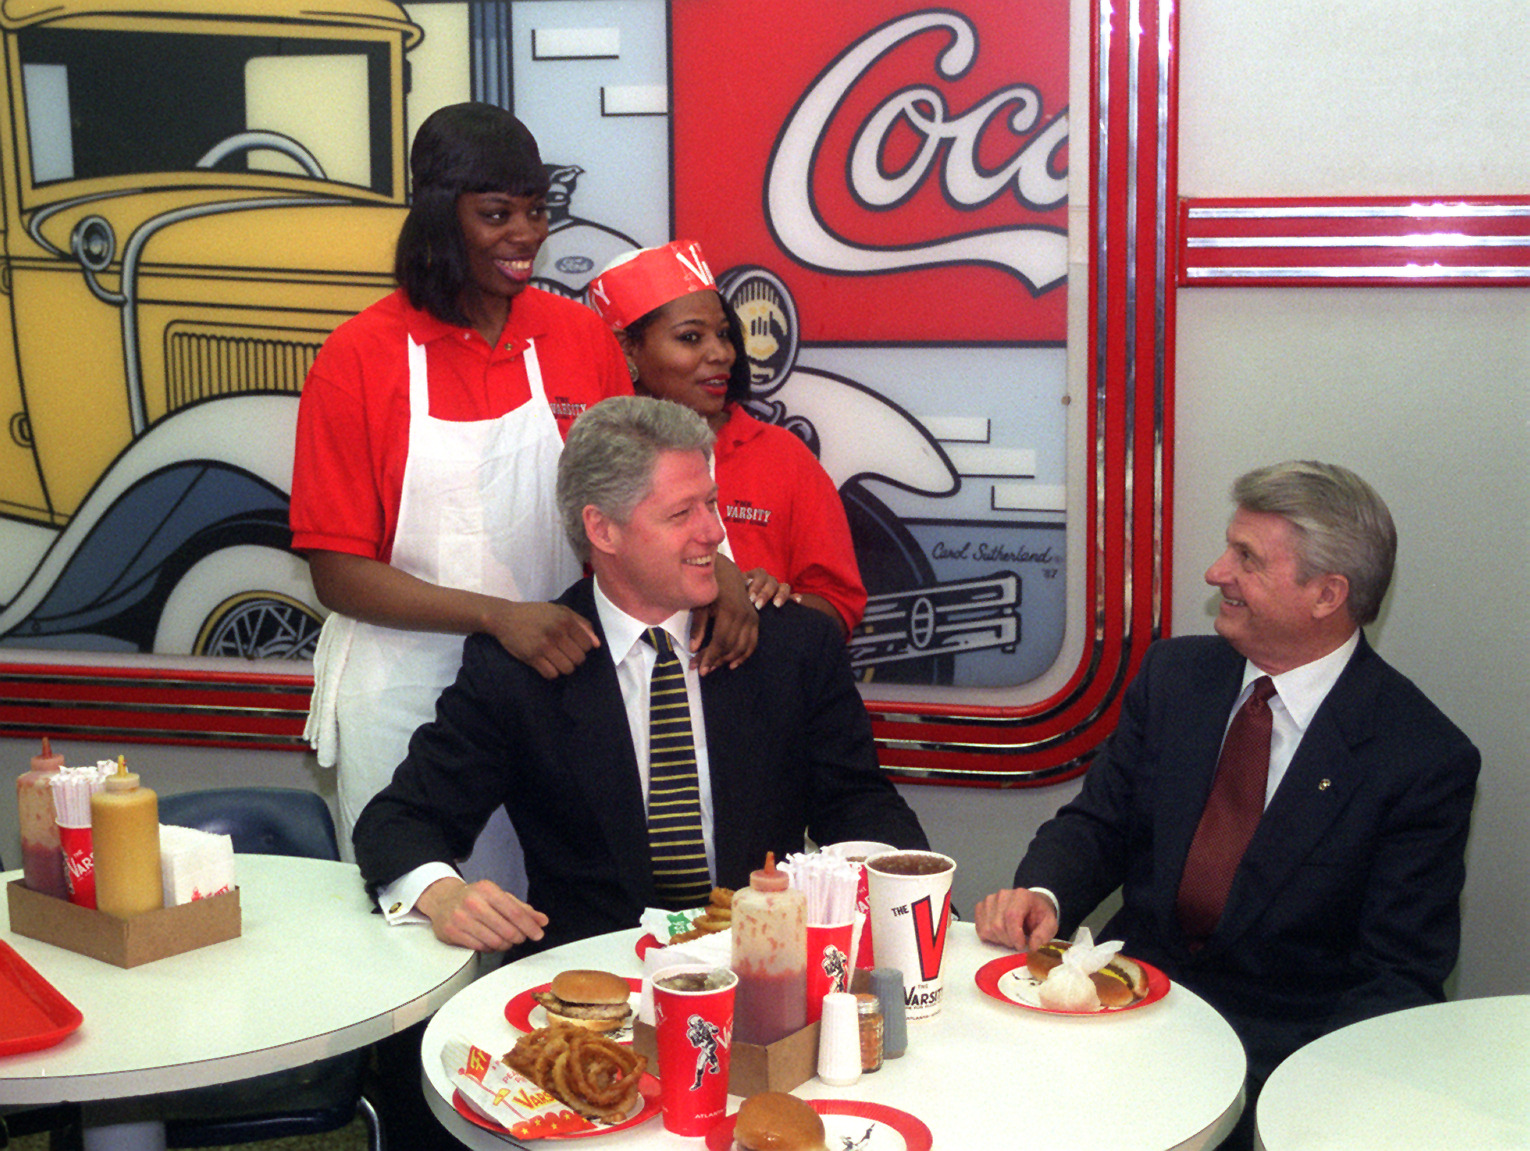 President Clinton ate a grilled chicken sandwich at the Varsity. Pathetic. Photo uploaded by blogs.ajc.com.